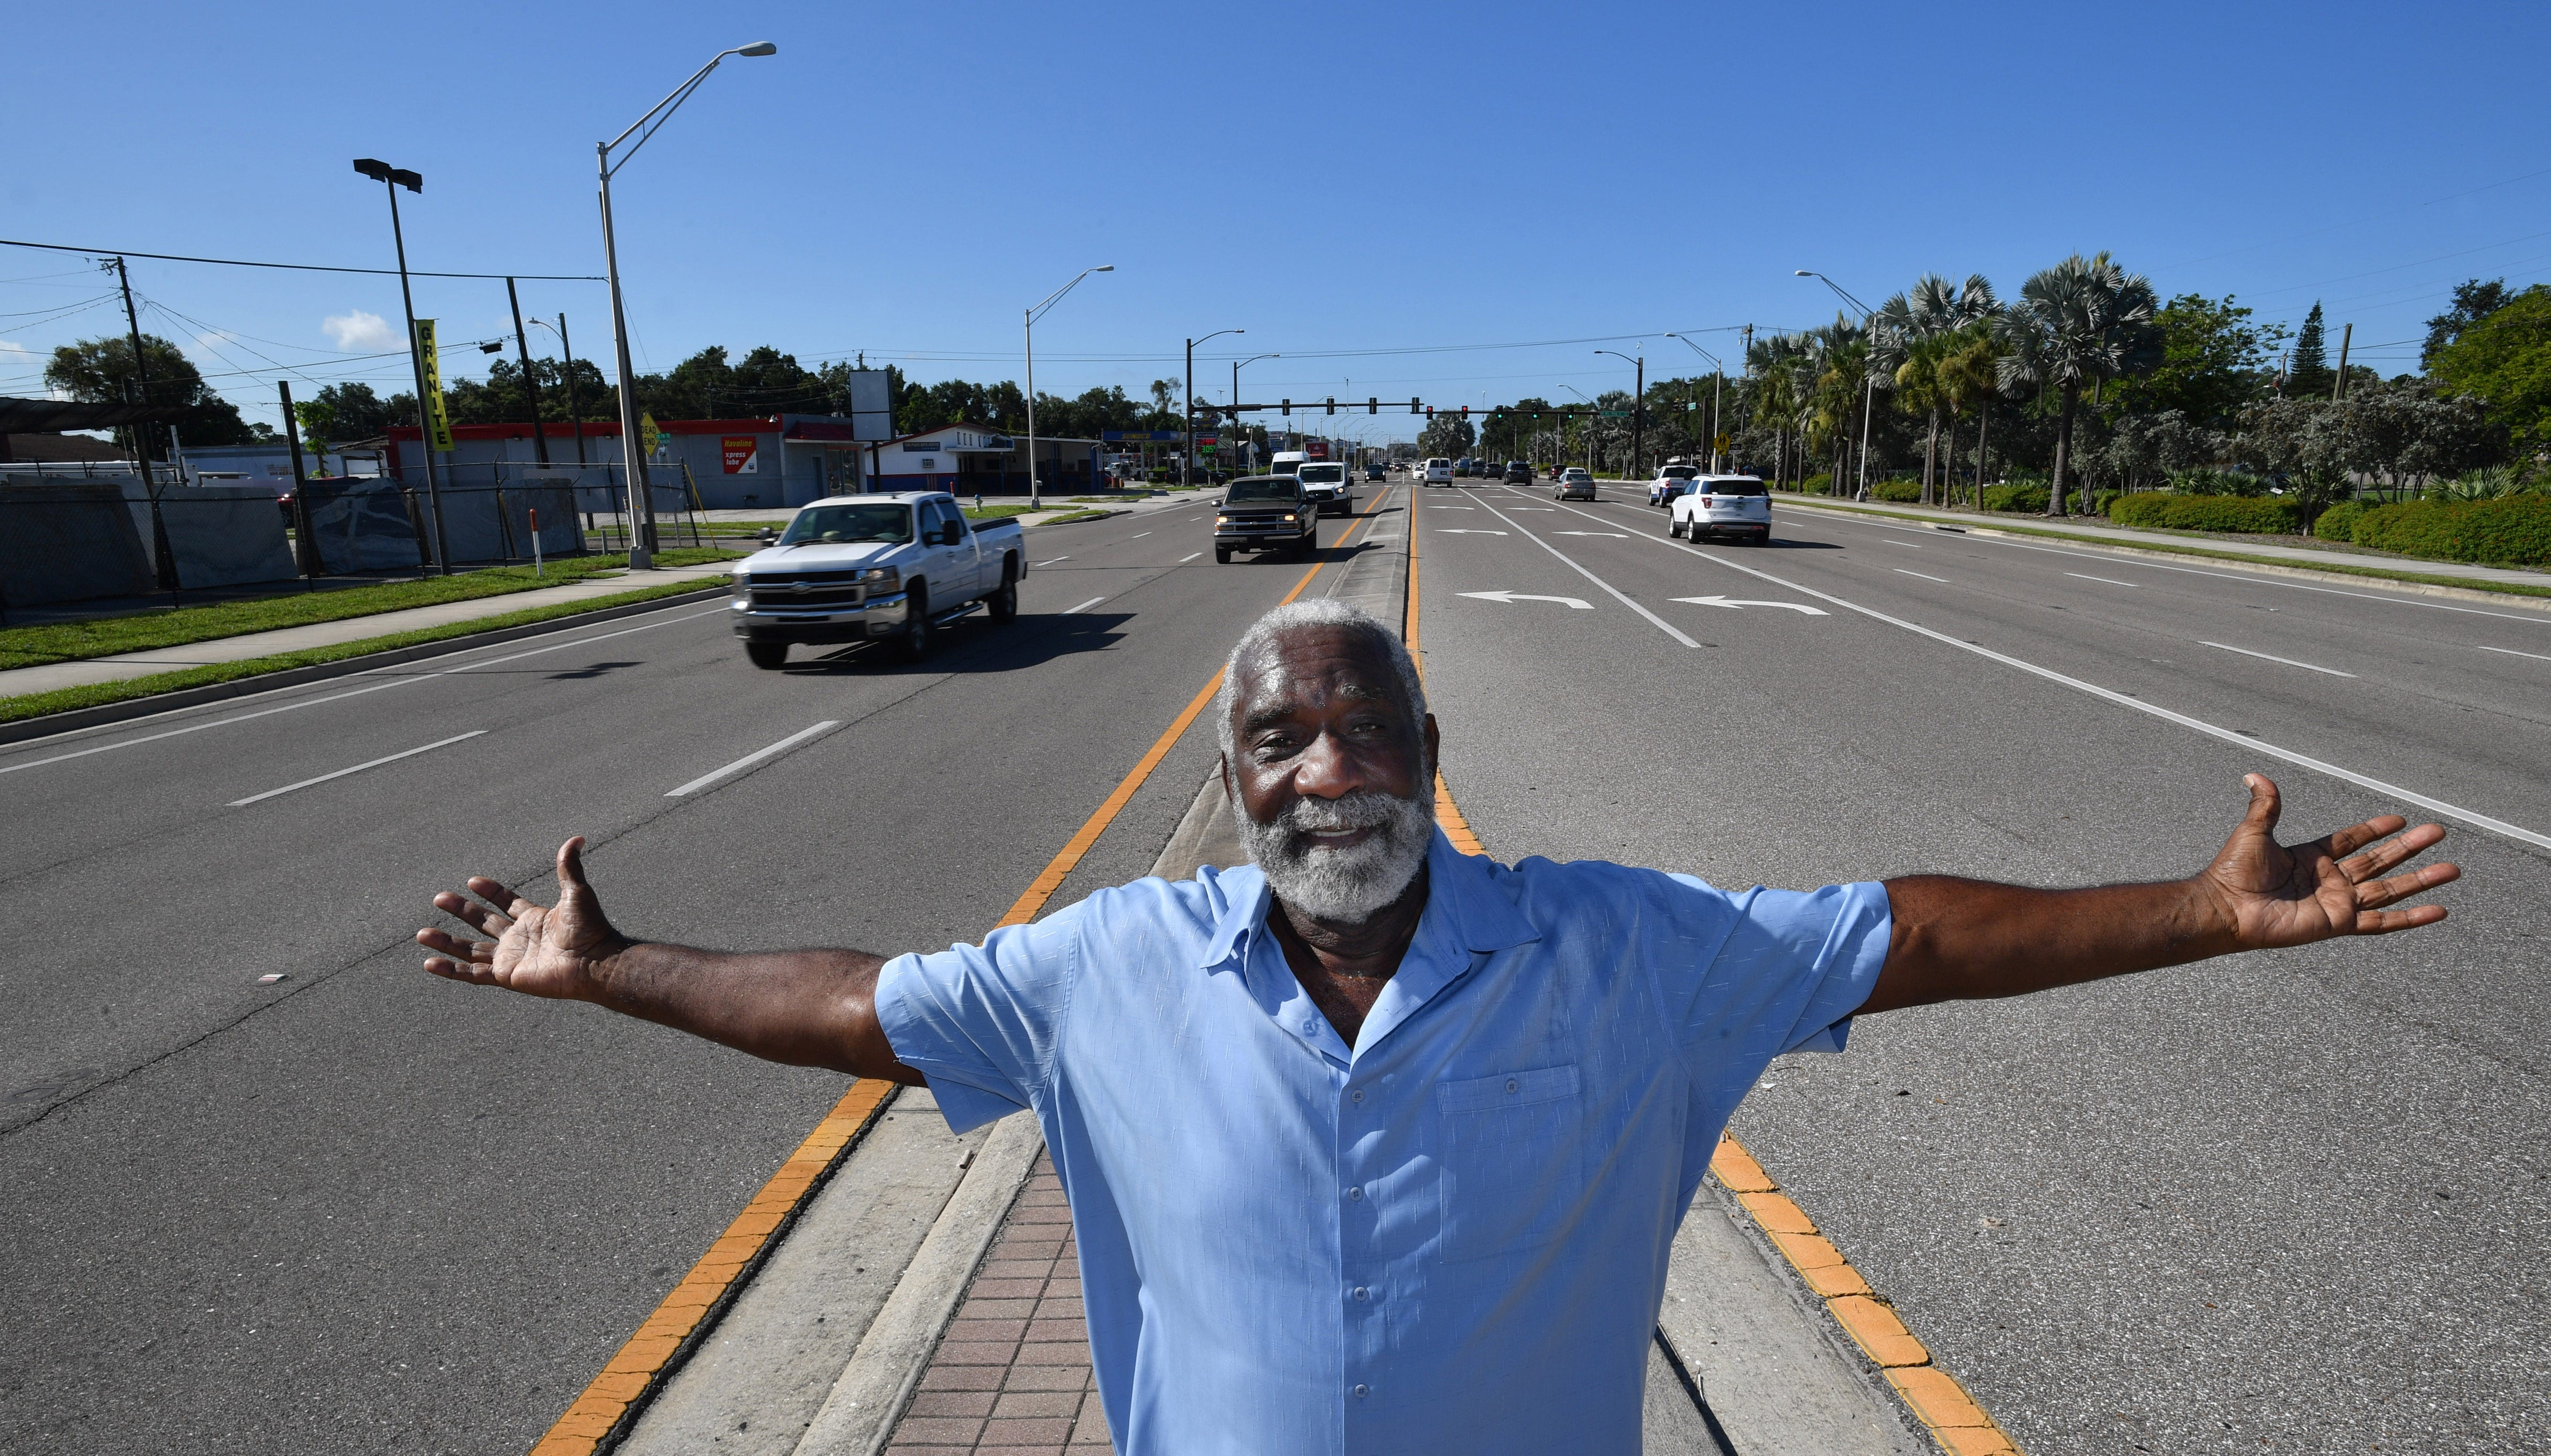 Fredd Atkins, a lifelong resident of Sarasota's Newtown neighborhood, remembers when U.S. Highway 301 hadn't yet sliced through the neighborhood. The former Sarasota city commissioner said the six-lane highway has divided the community and been very dangerous.